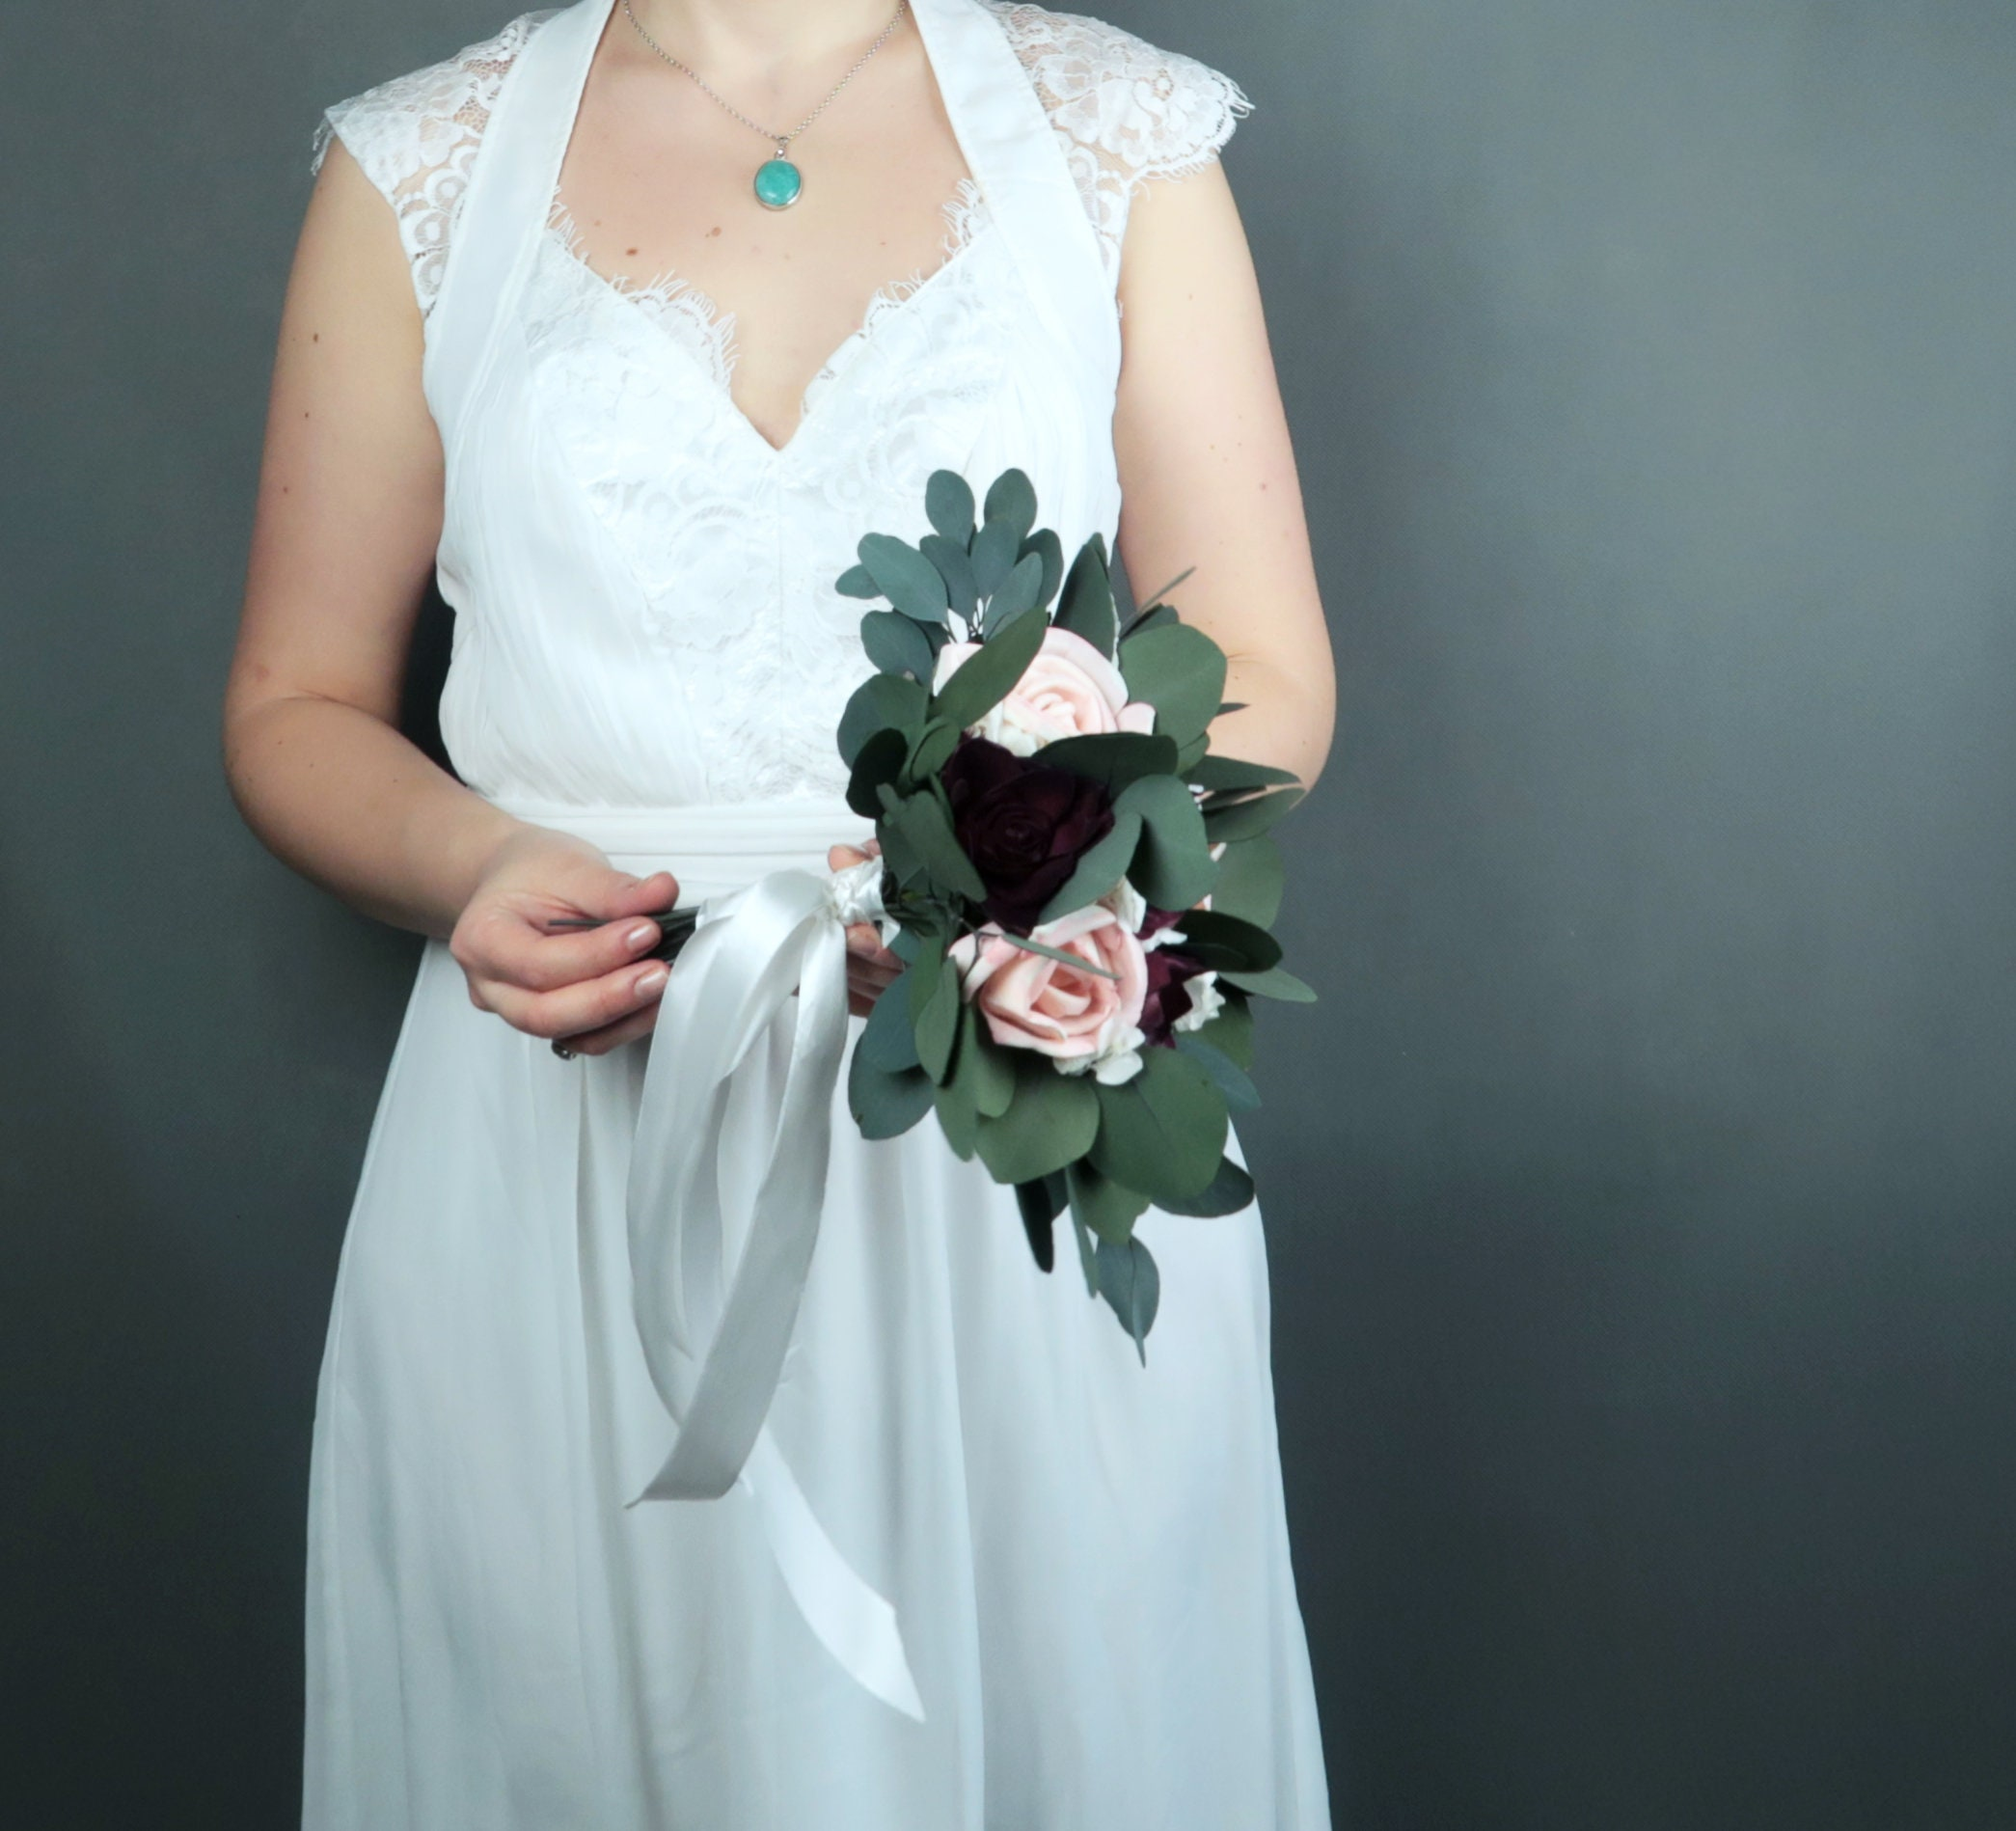 Outstanding Wedding Dress Preservation Chicago Mold - All Wedding ...